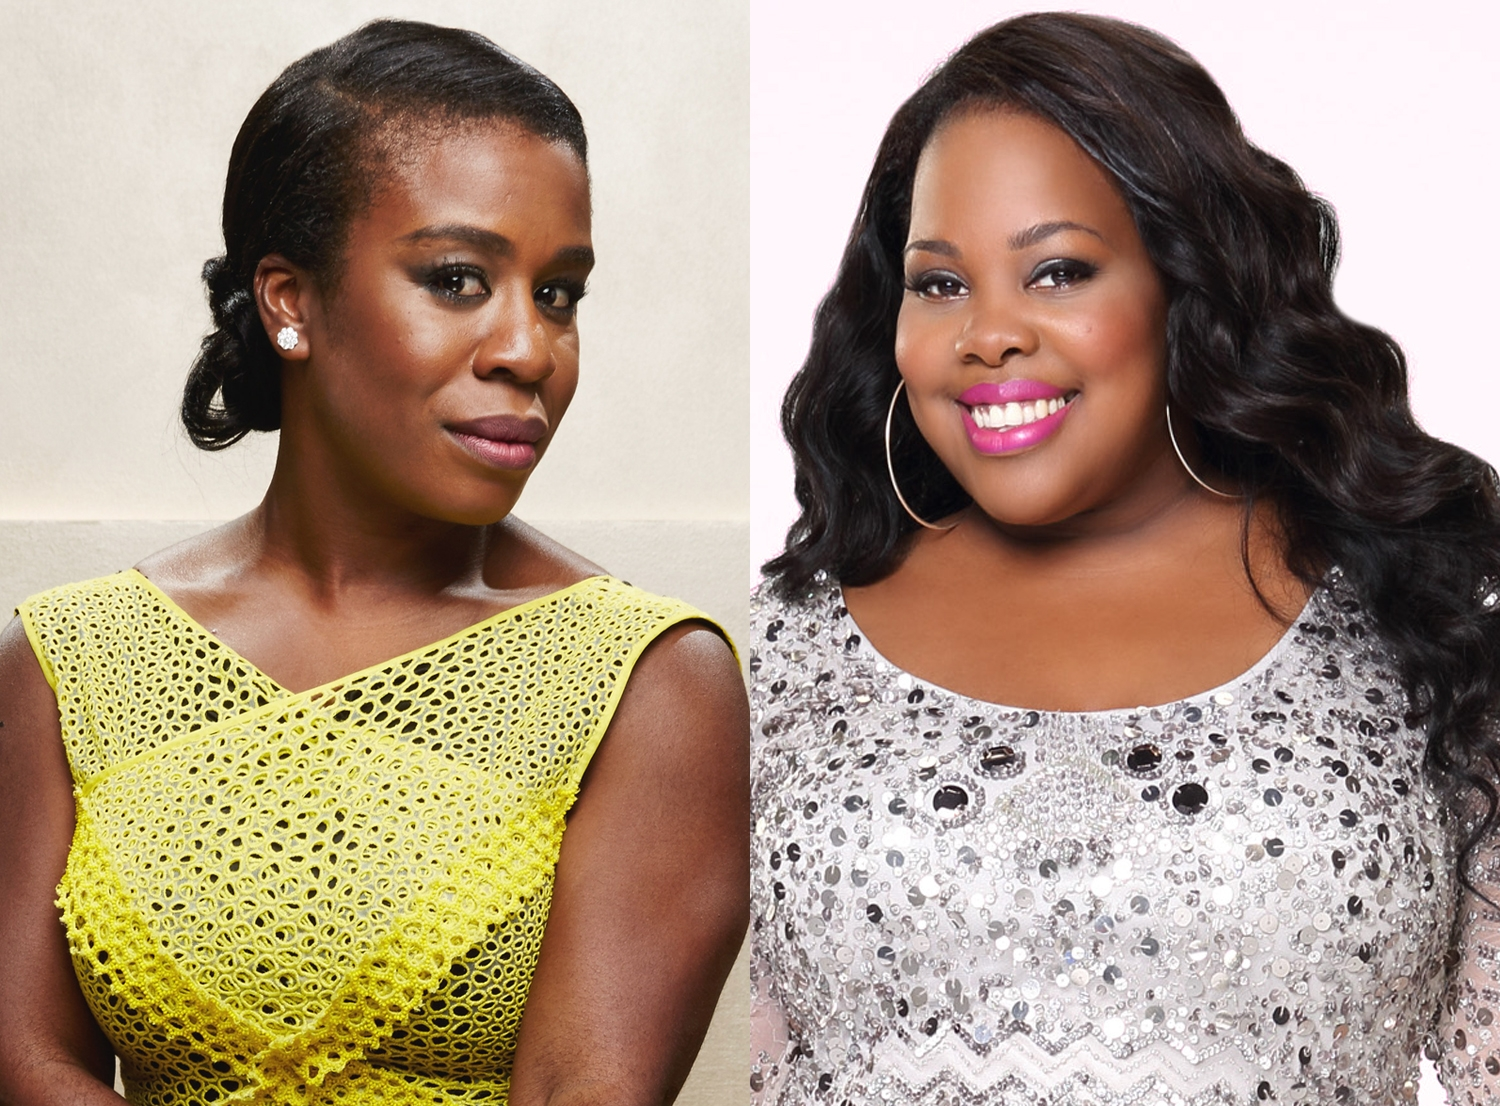 Uzo Aduba, Amber Riley Cast in NBC's Live-Action Remake of 'The Wiz'